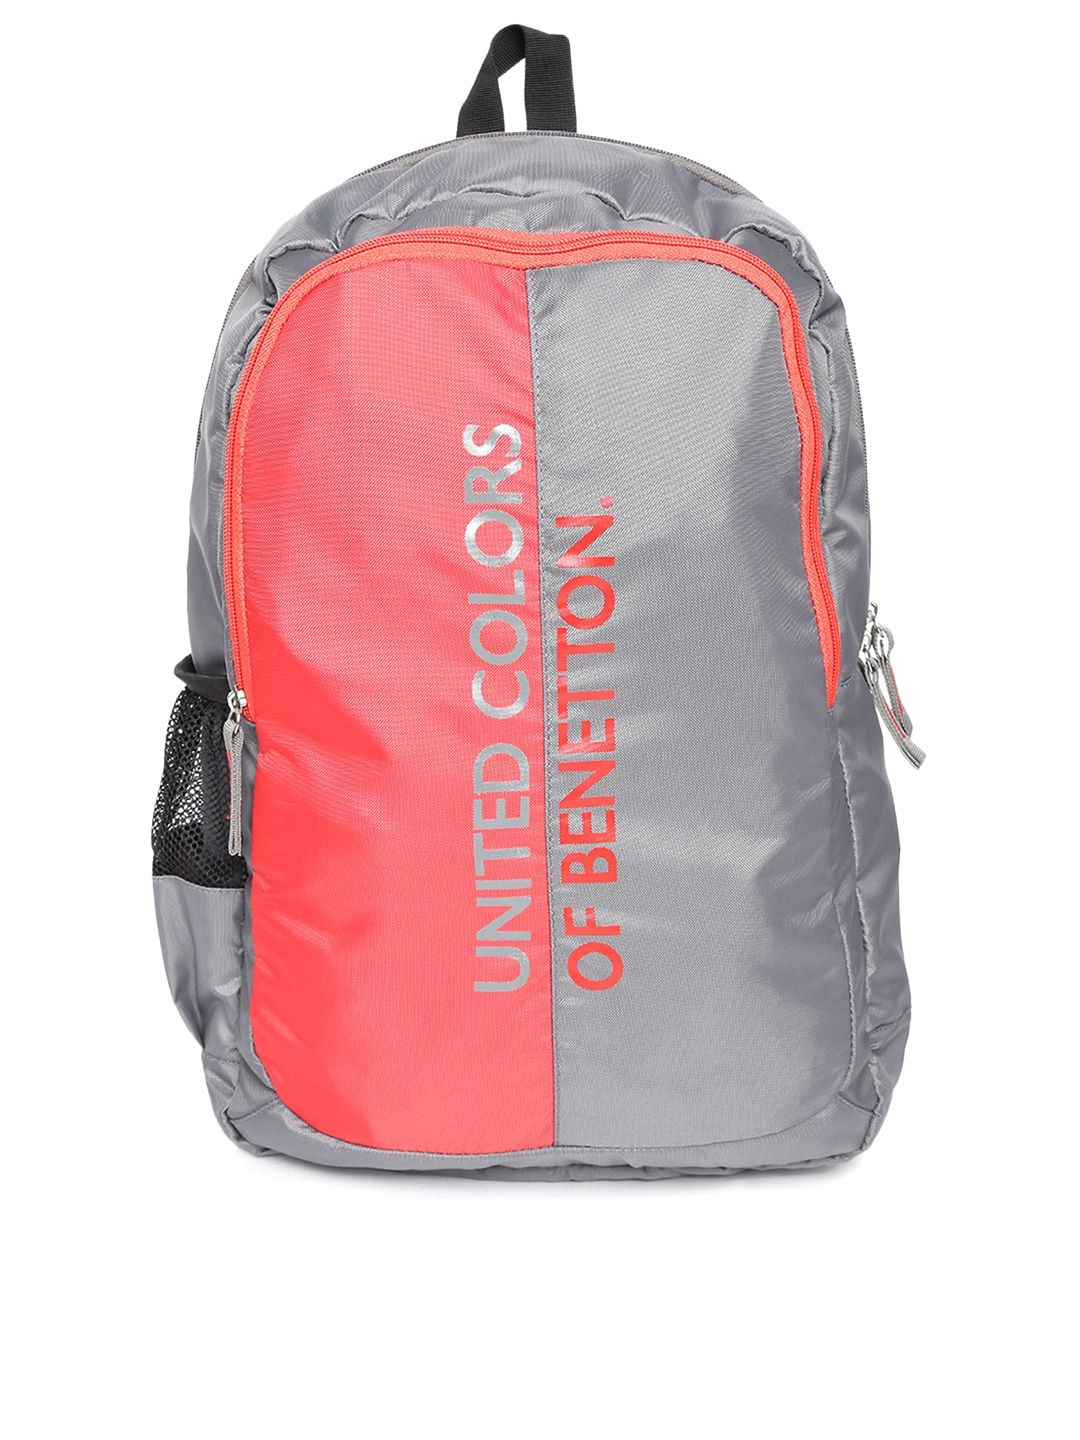 United Colors Of Benetton Bags - Buy UCB Bag Online in India 1bd96ef131